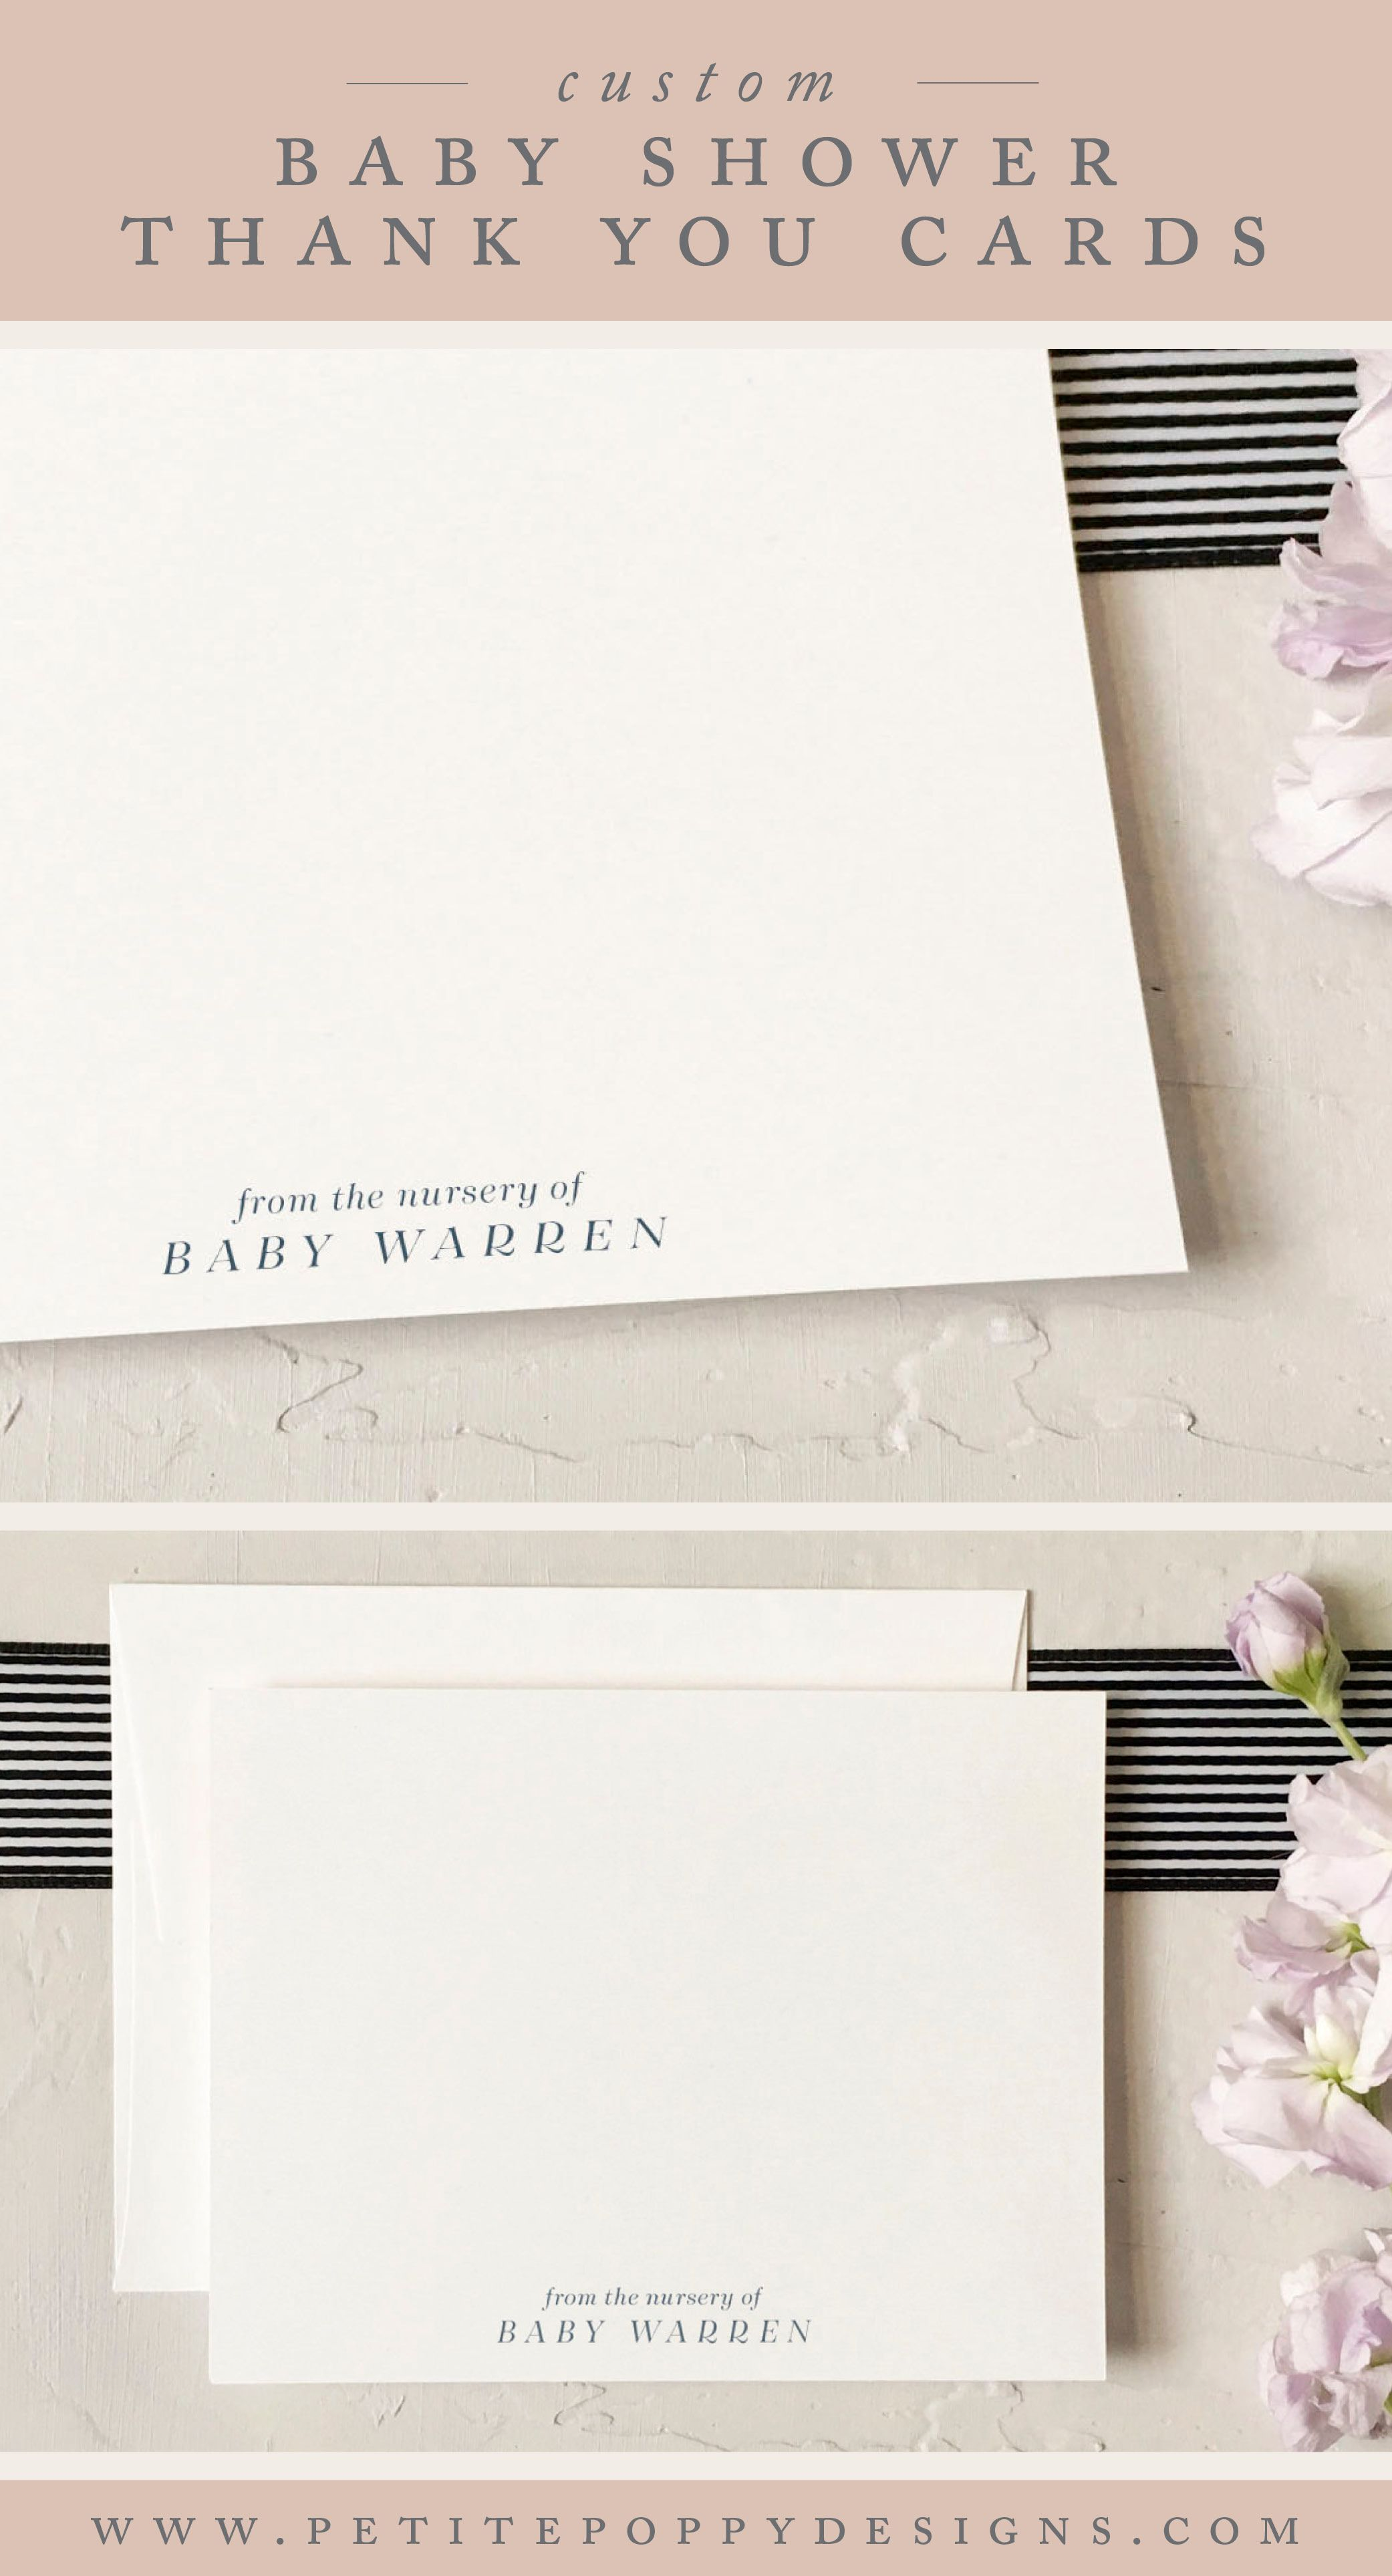 personalized from the nursery of notecards simple and elegant baby